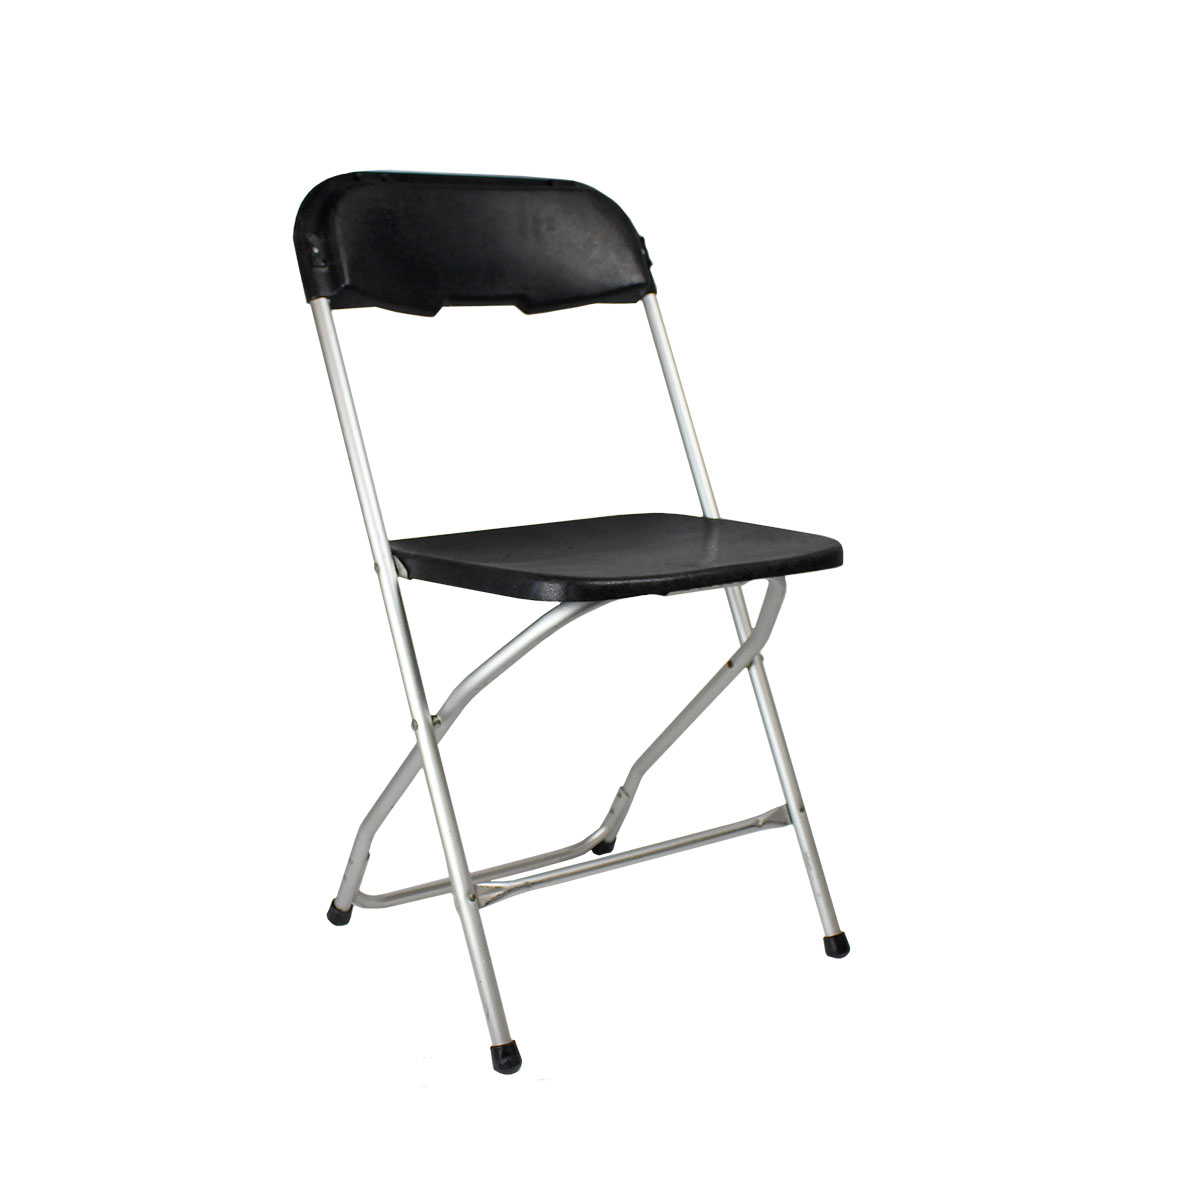 Chair Black Plastic Folding